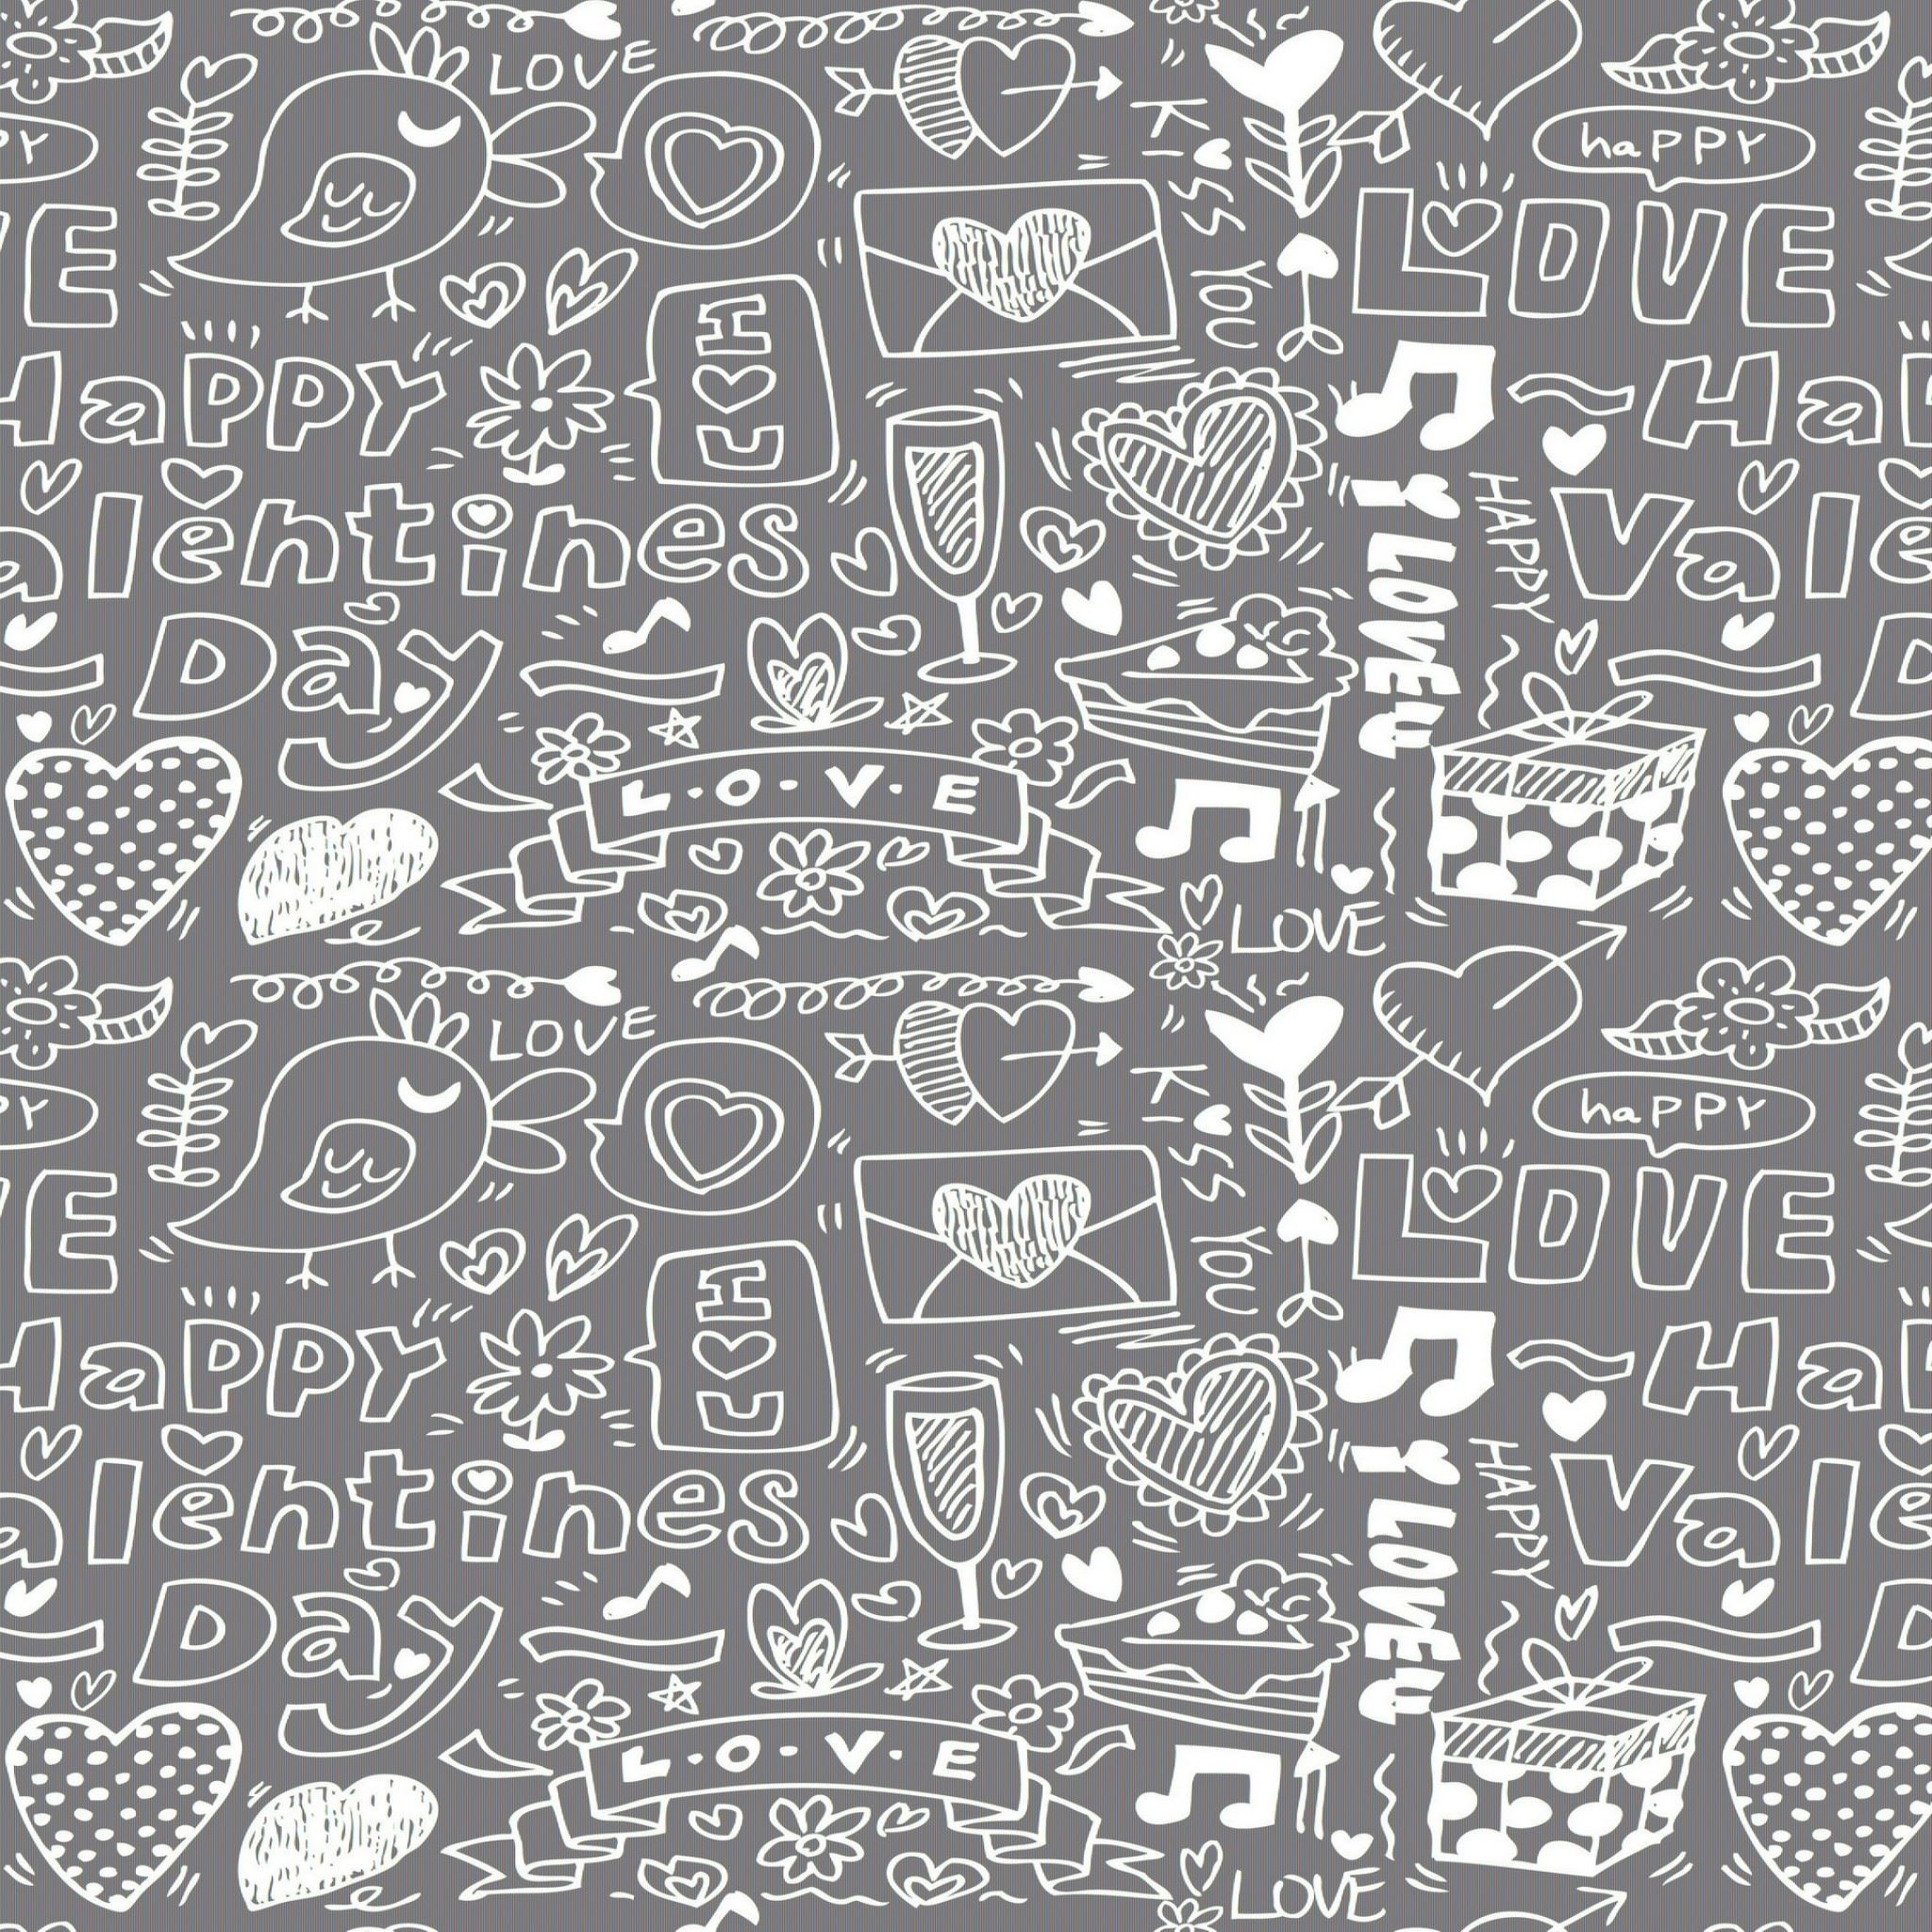 Love Happiness iPad Air wallpaper